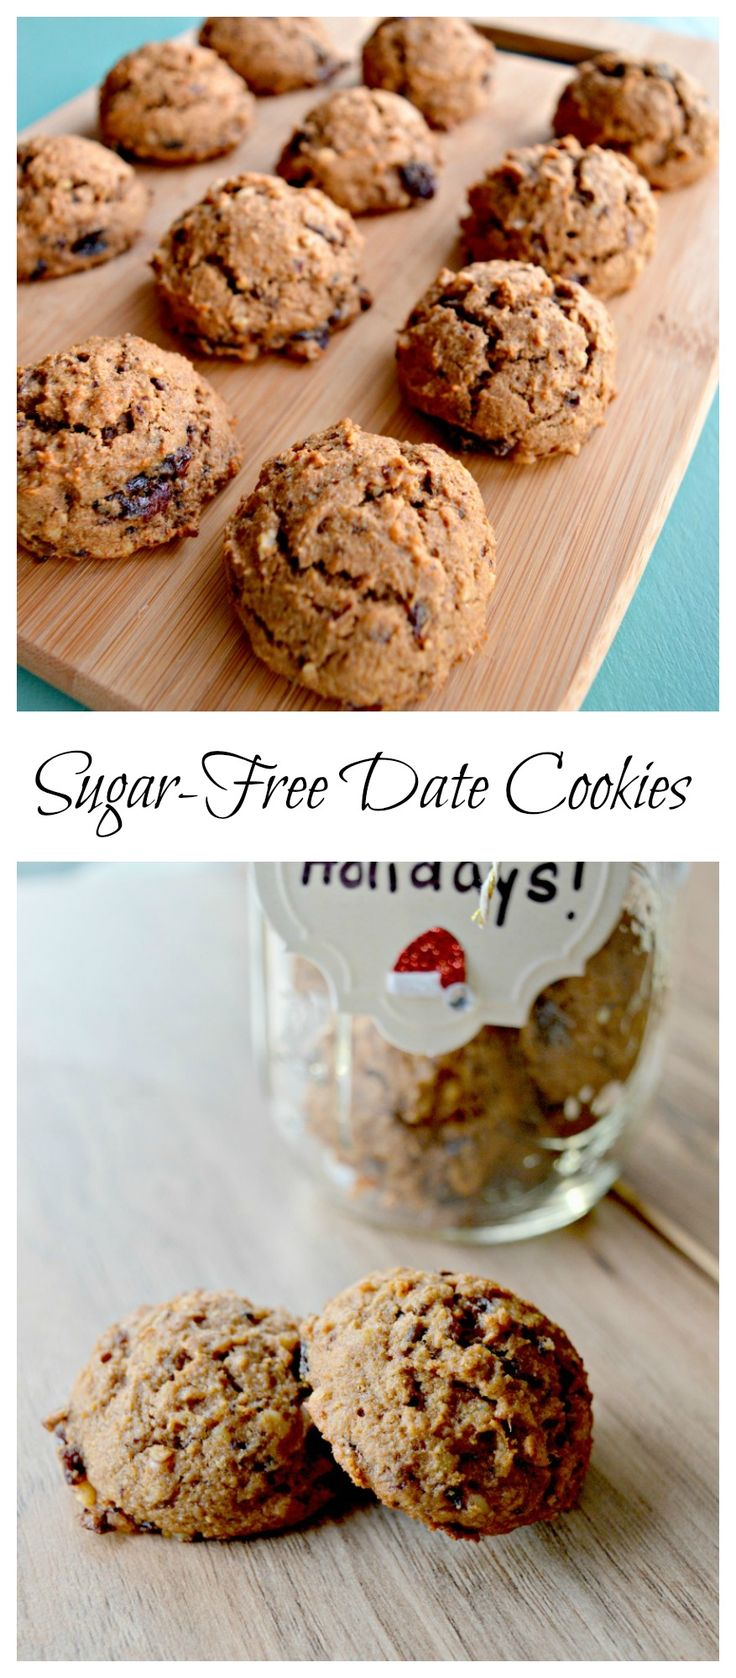 sugar free date cookies - sub 1/2 c coconut oil & 1/2 c butter for margarine.